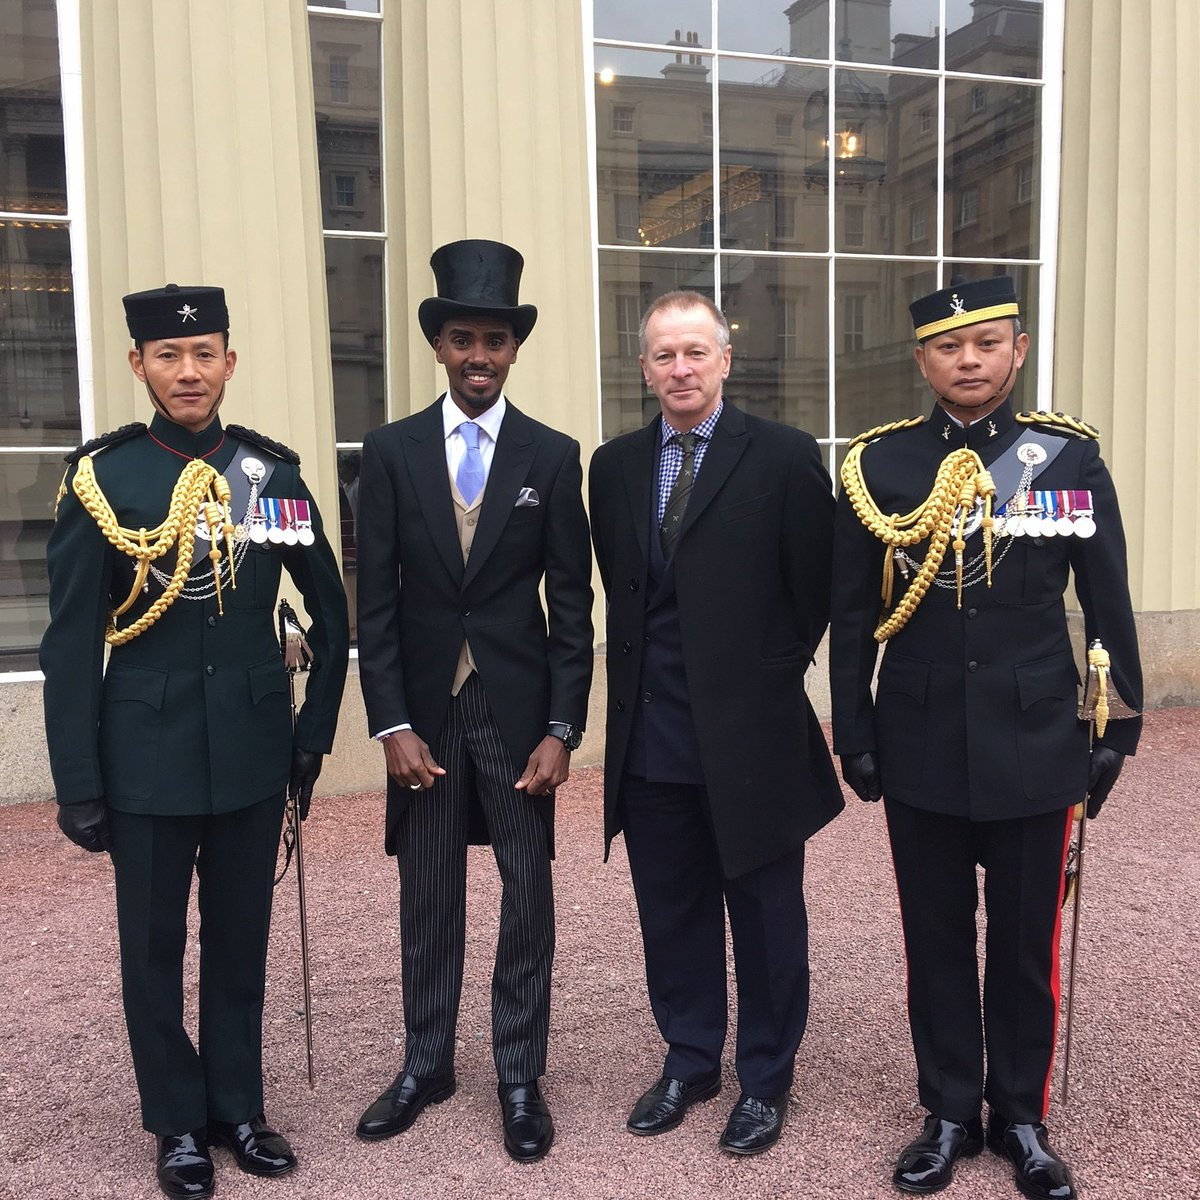 Sir Mo Farah seen here at Buckingham Palace yesterday with Colonel Brigade of Gurkhas and the Queen&#39;s Gurkha Orderly Officers. #Farah #Mo #Gurkha #knighthood<br>http://pic.twitter.com/hnYXKX1fZW